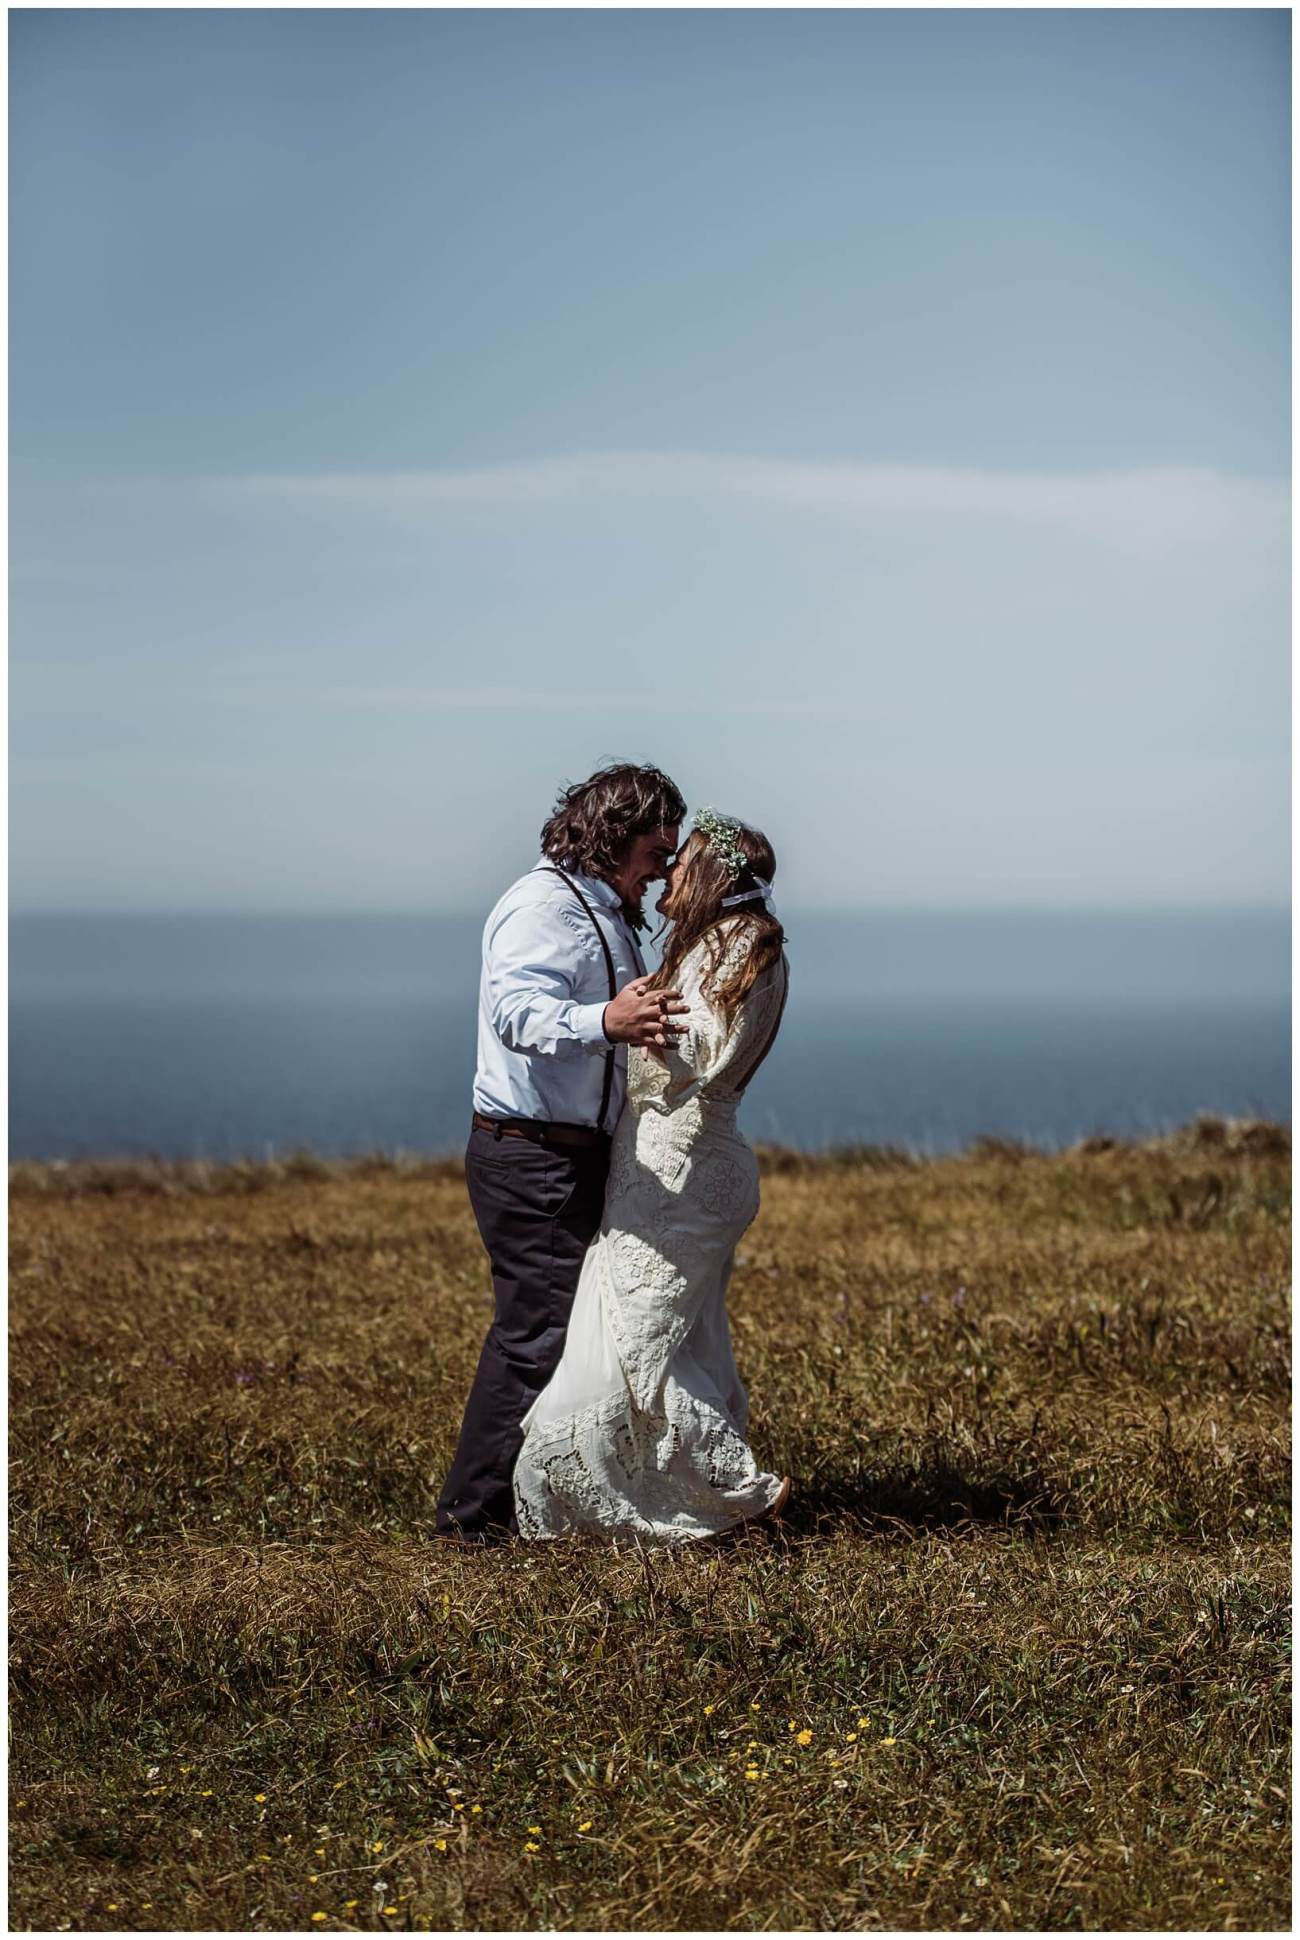 S Photography,adventure elopements,adventure engagement session,adventure weddings,beach wedding,brookings,elope,elopement photographer,hug point state recreation site,northern california,oregon,oregon coast,pacific northwest,samuel h boardman,scenic corridor,